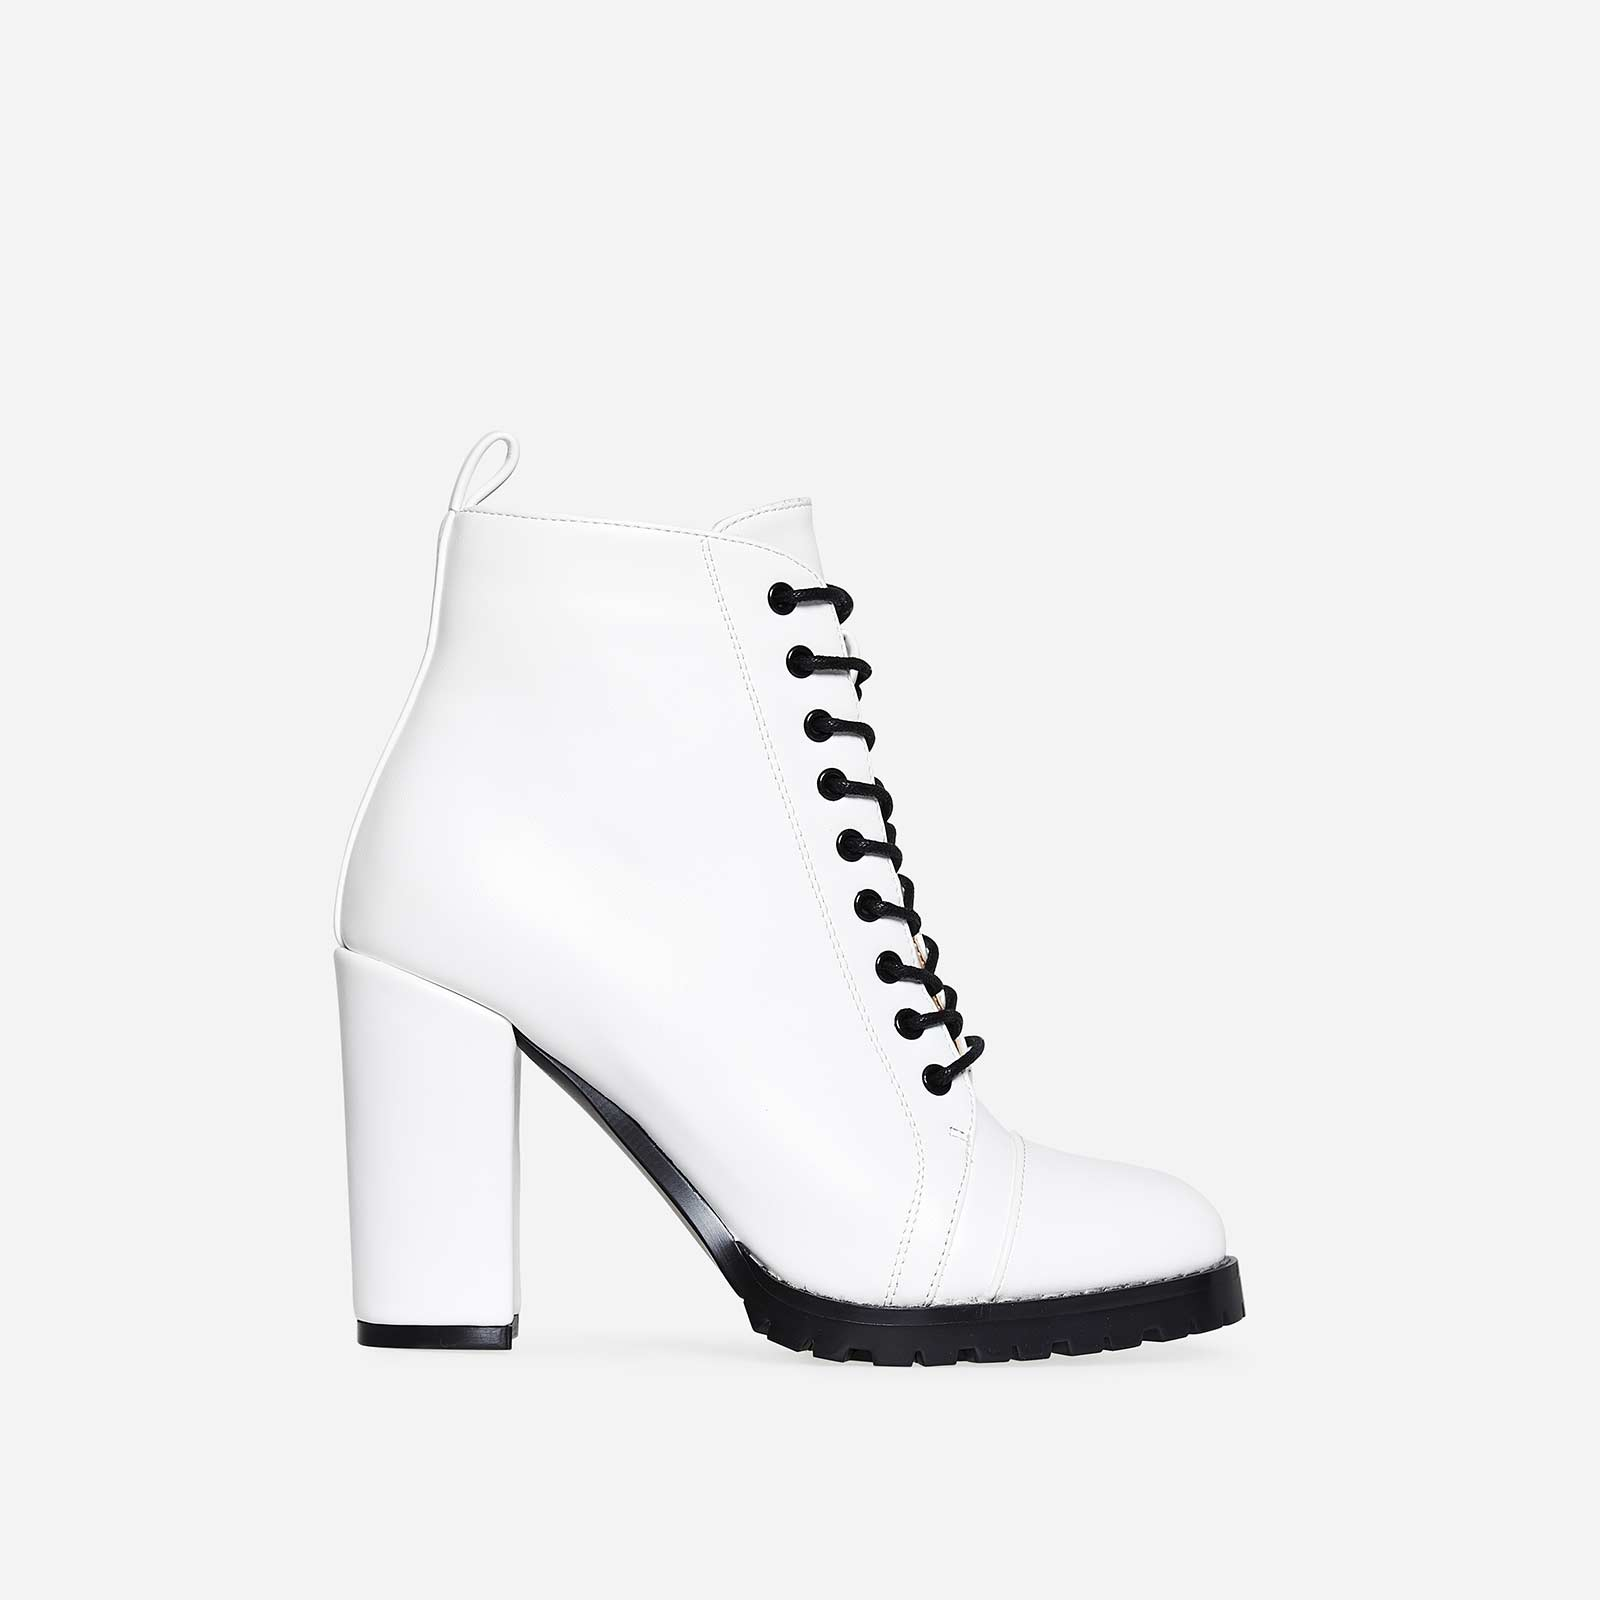 Kennedy Lace Up Platform Biker Boot In White Faux Leather